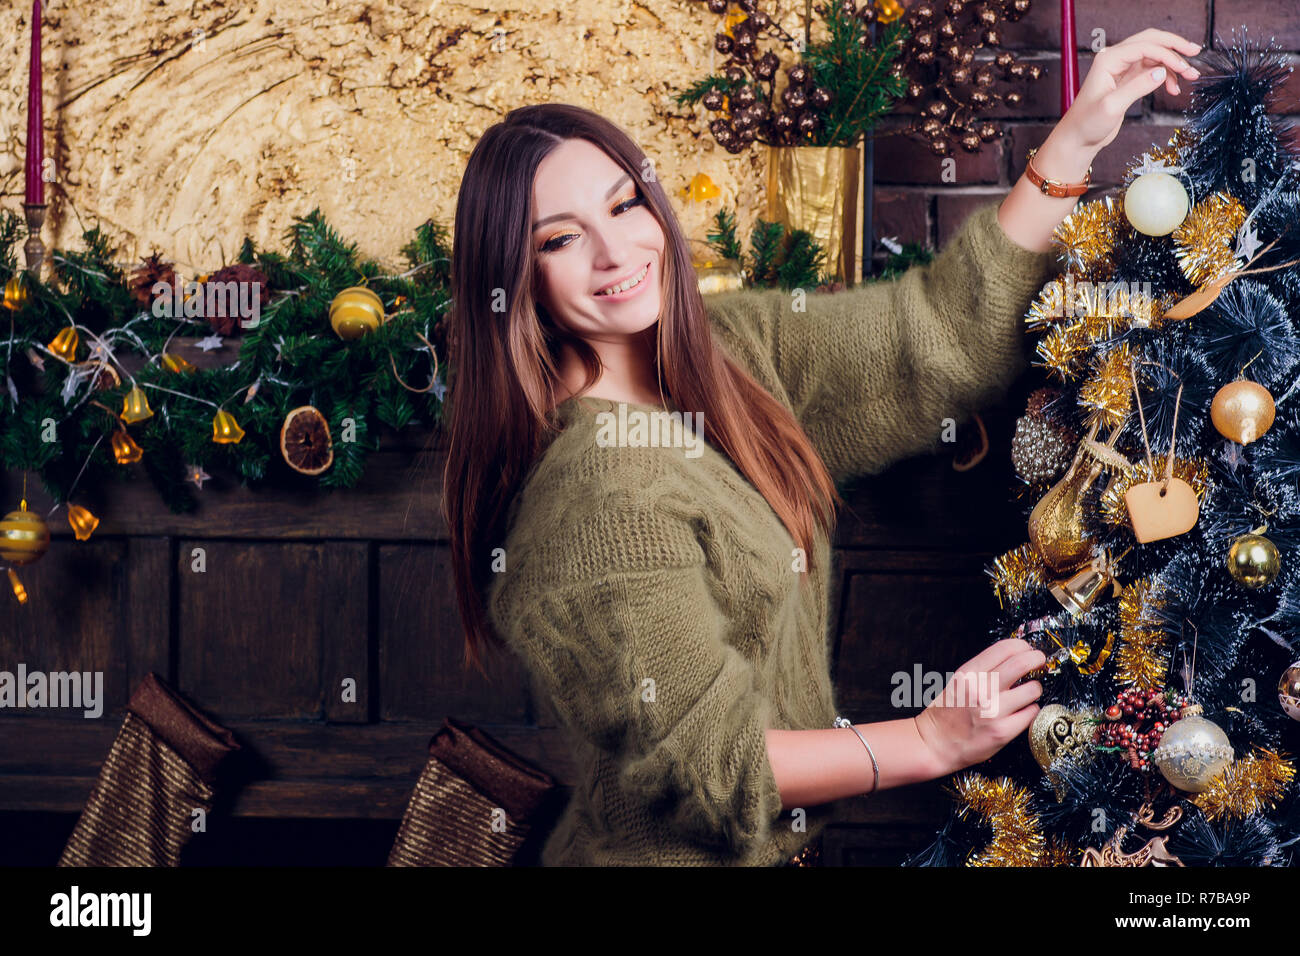 A teenage girl with long brown hair and green comfy sweater sitting and looking sideways. - Stock Image